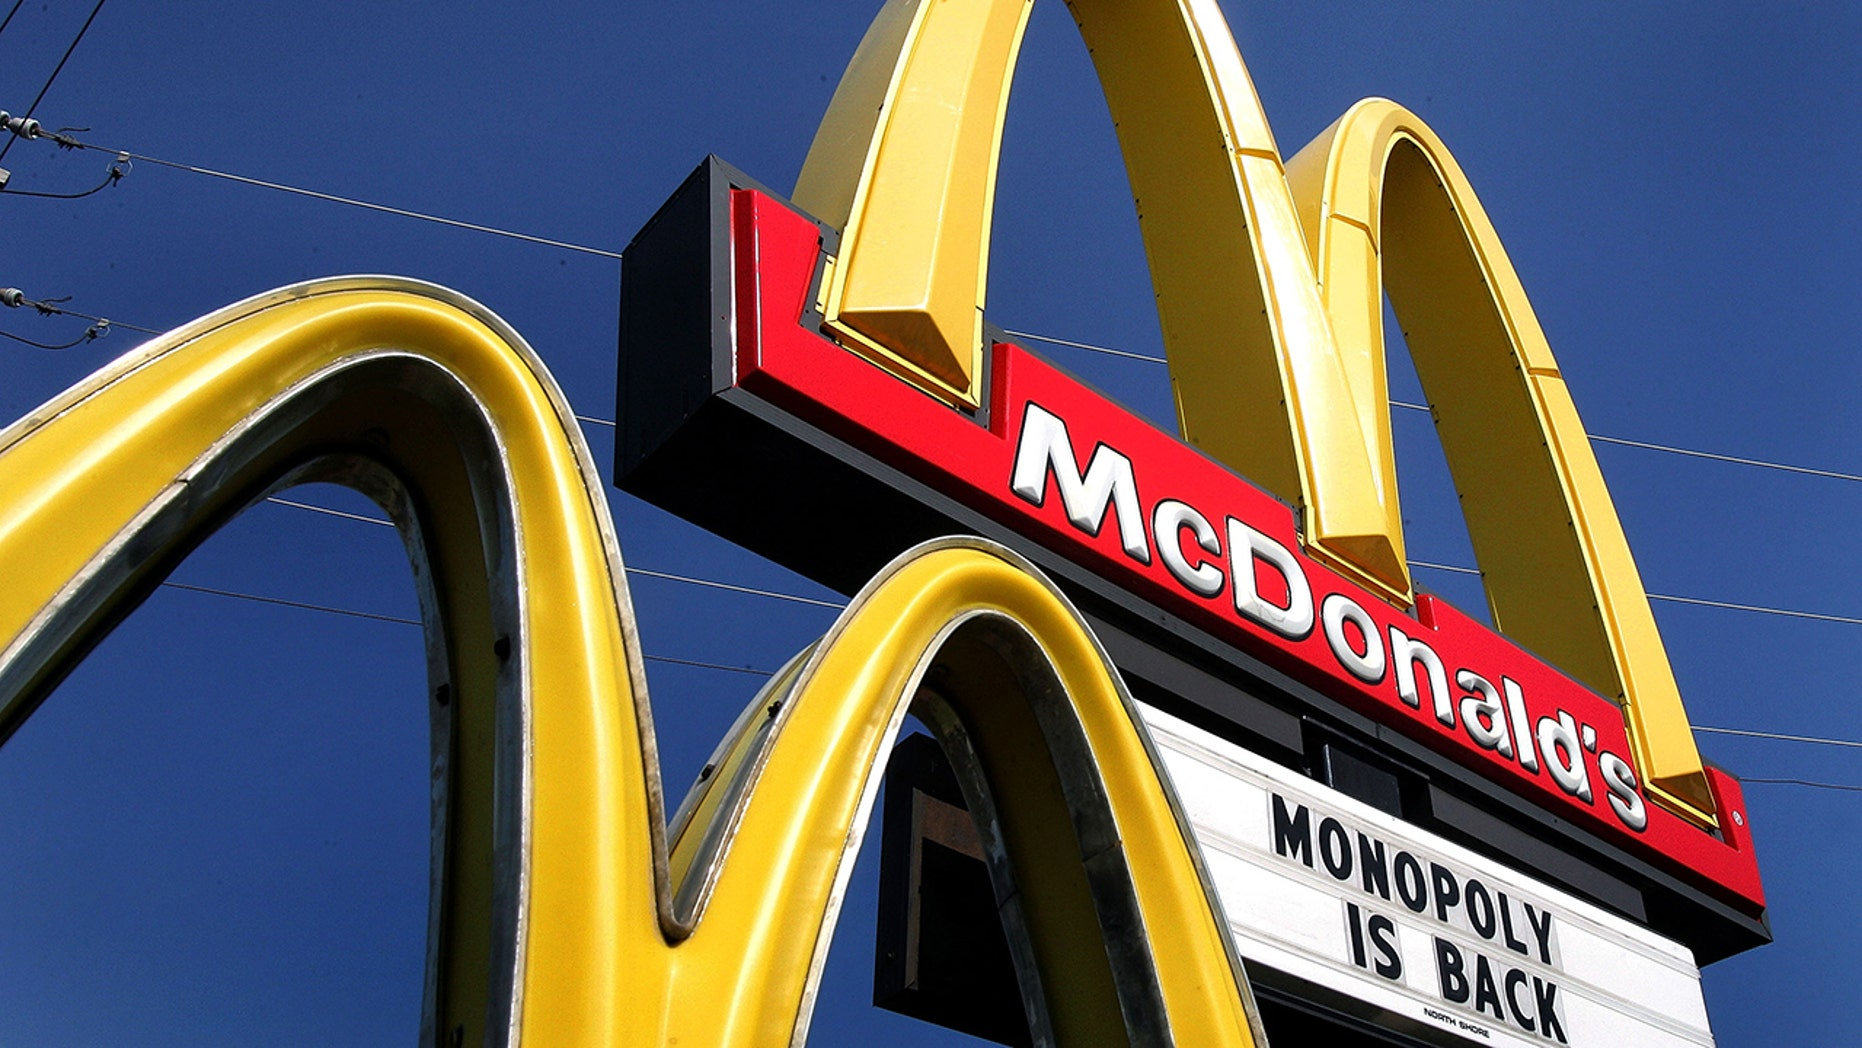 McDonald's was made to give away even more cash to make amends to those who played fairly, according to recently unearthed reports.